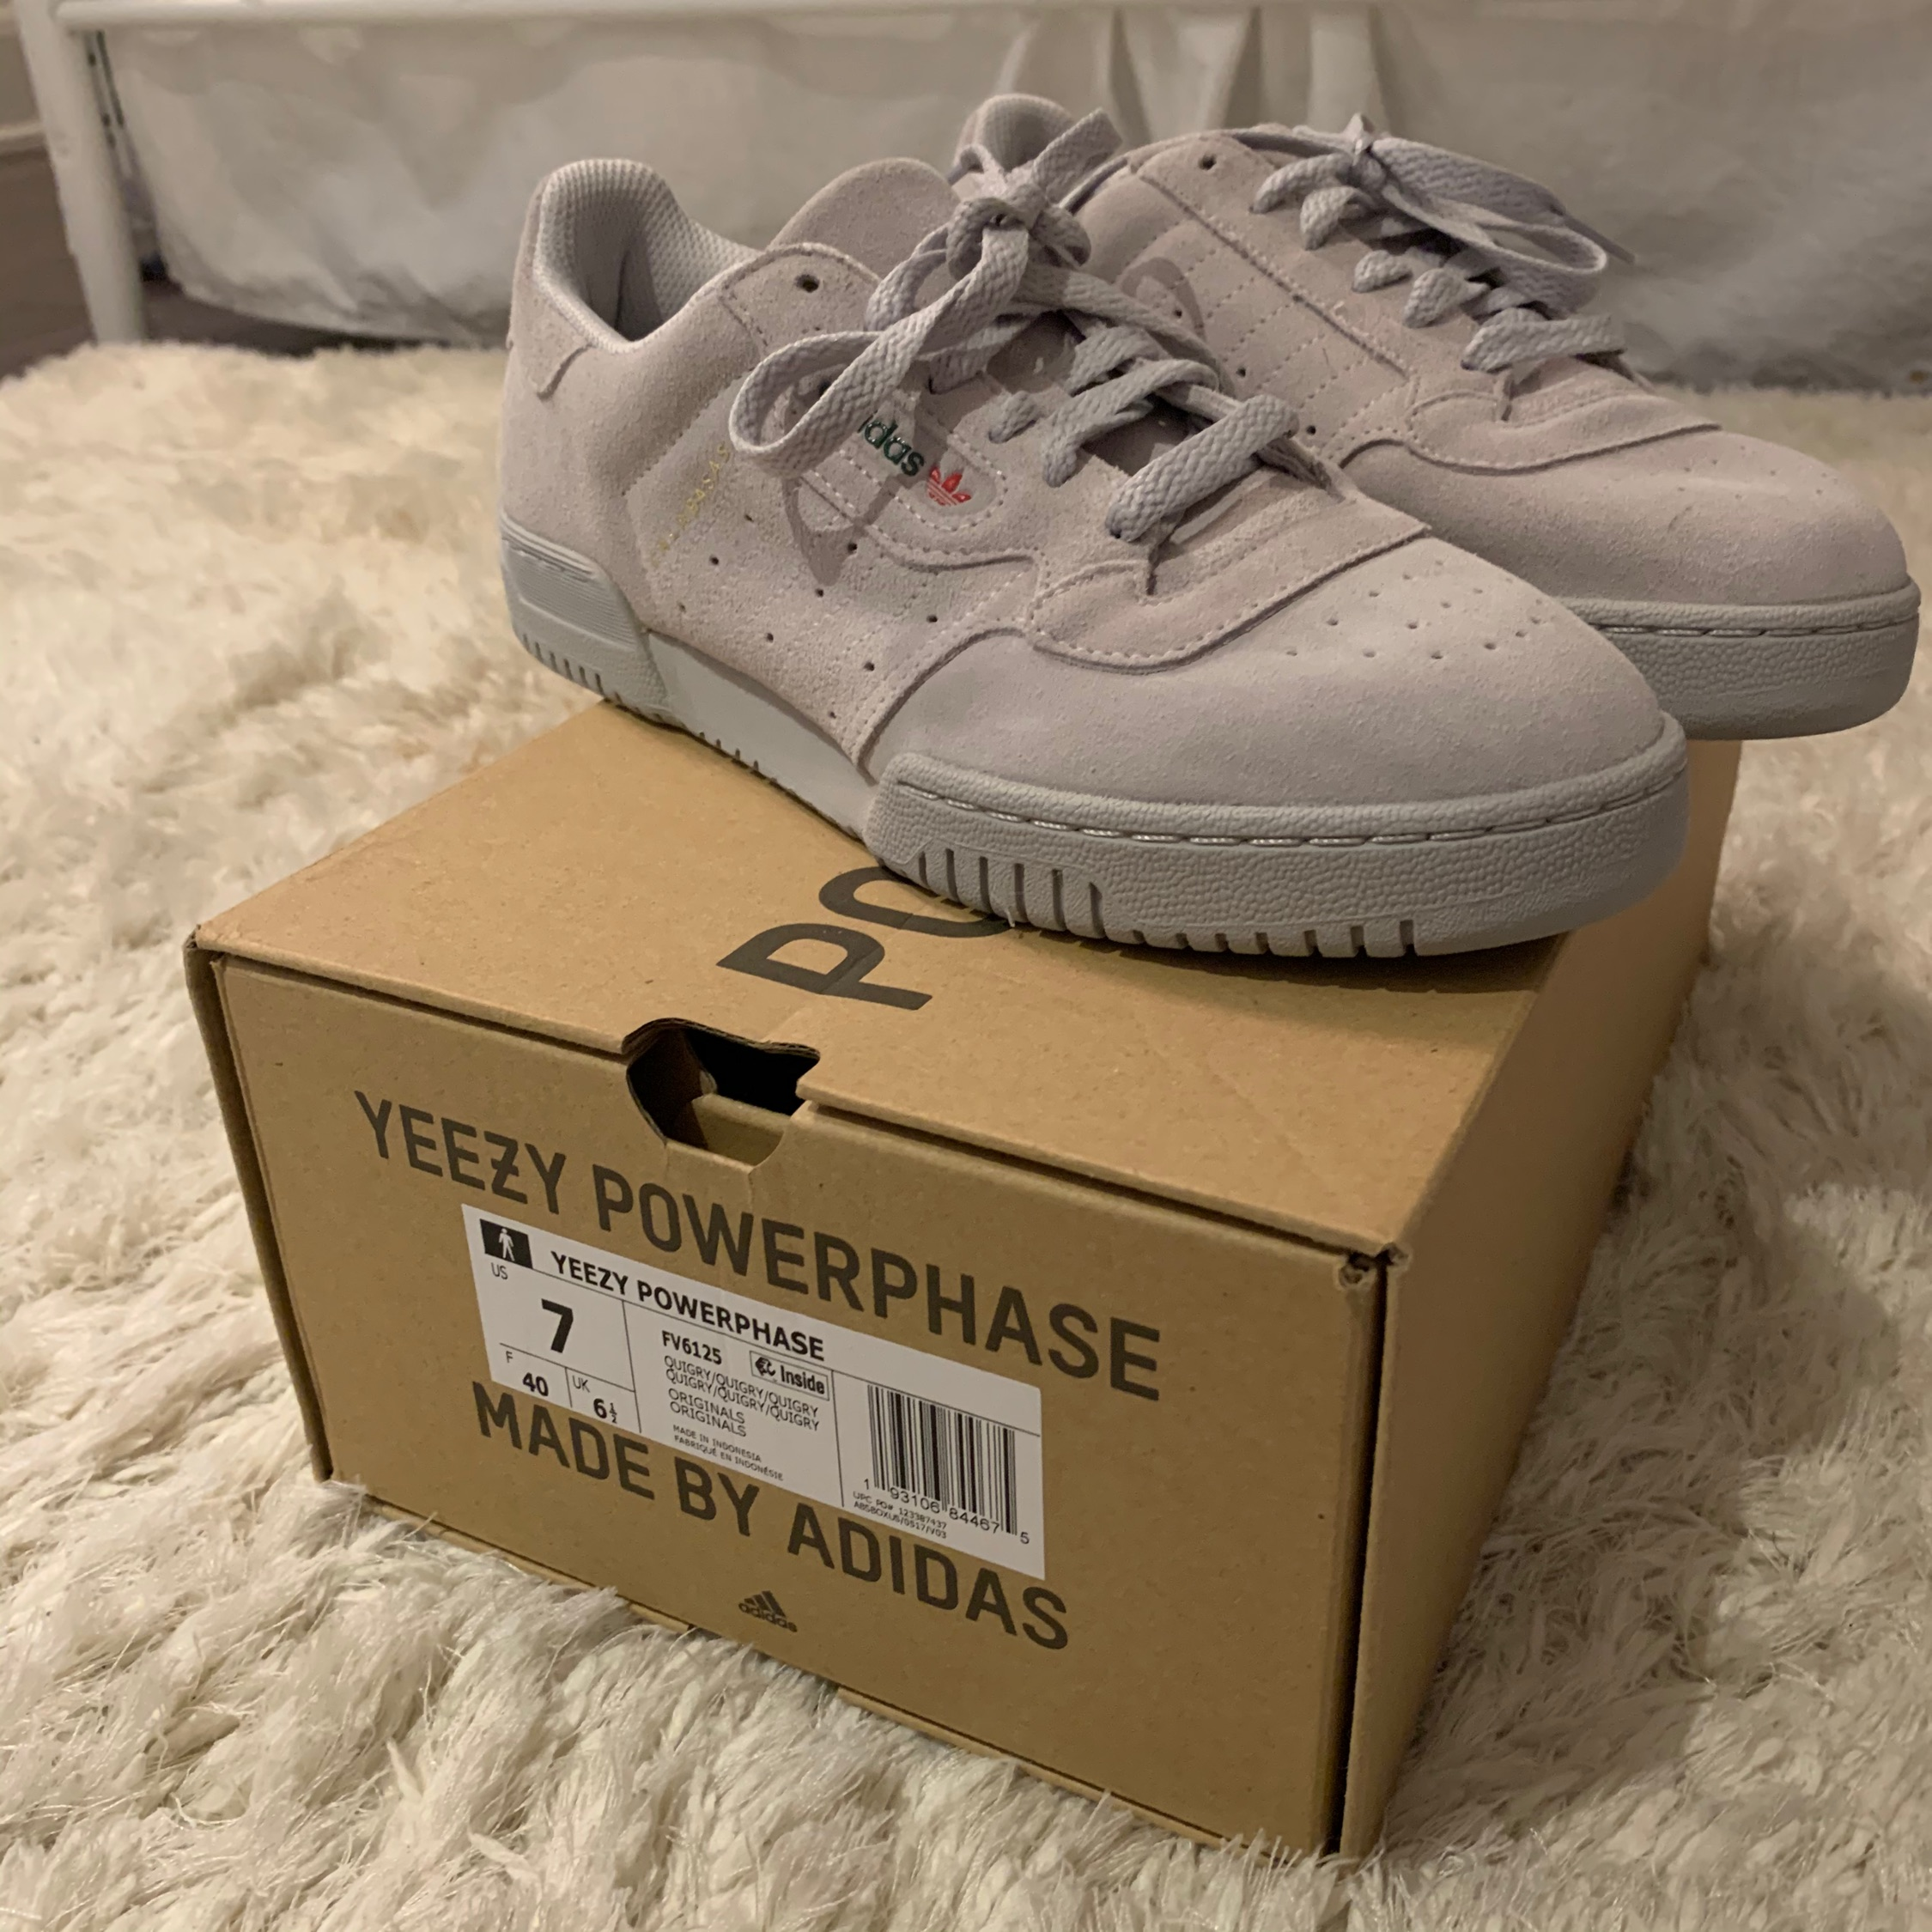 adidas yeezy powerphase calabasas quiet grey